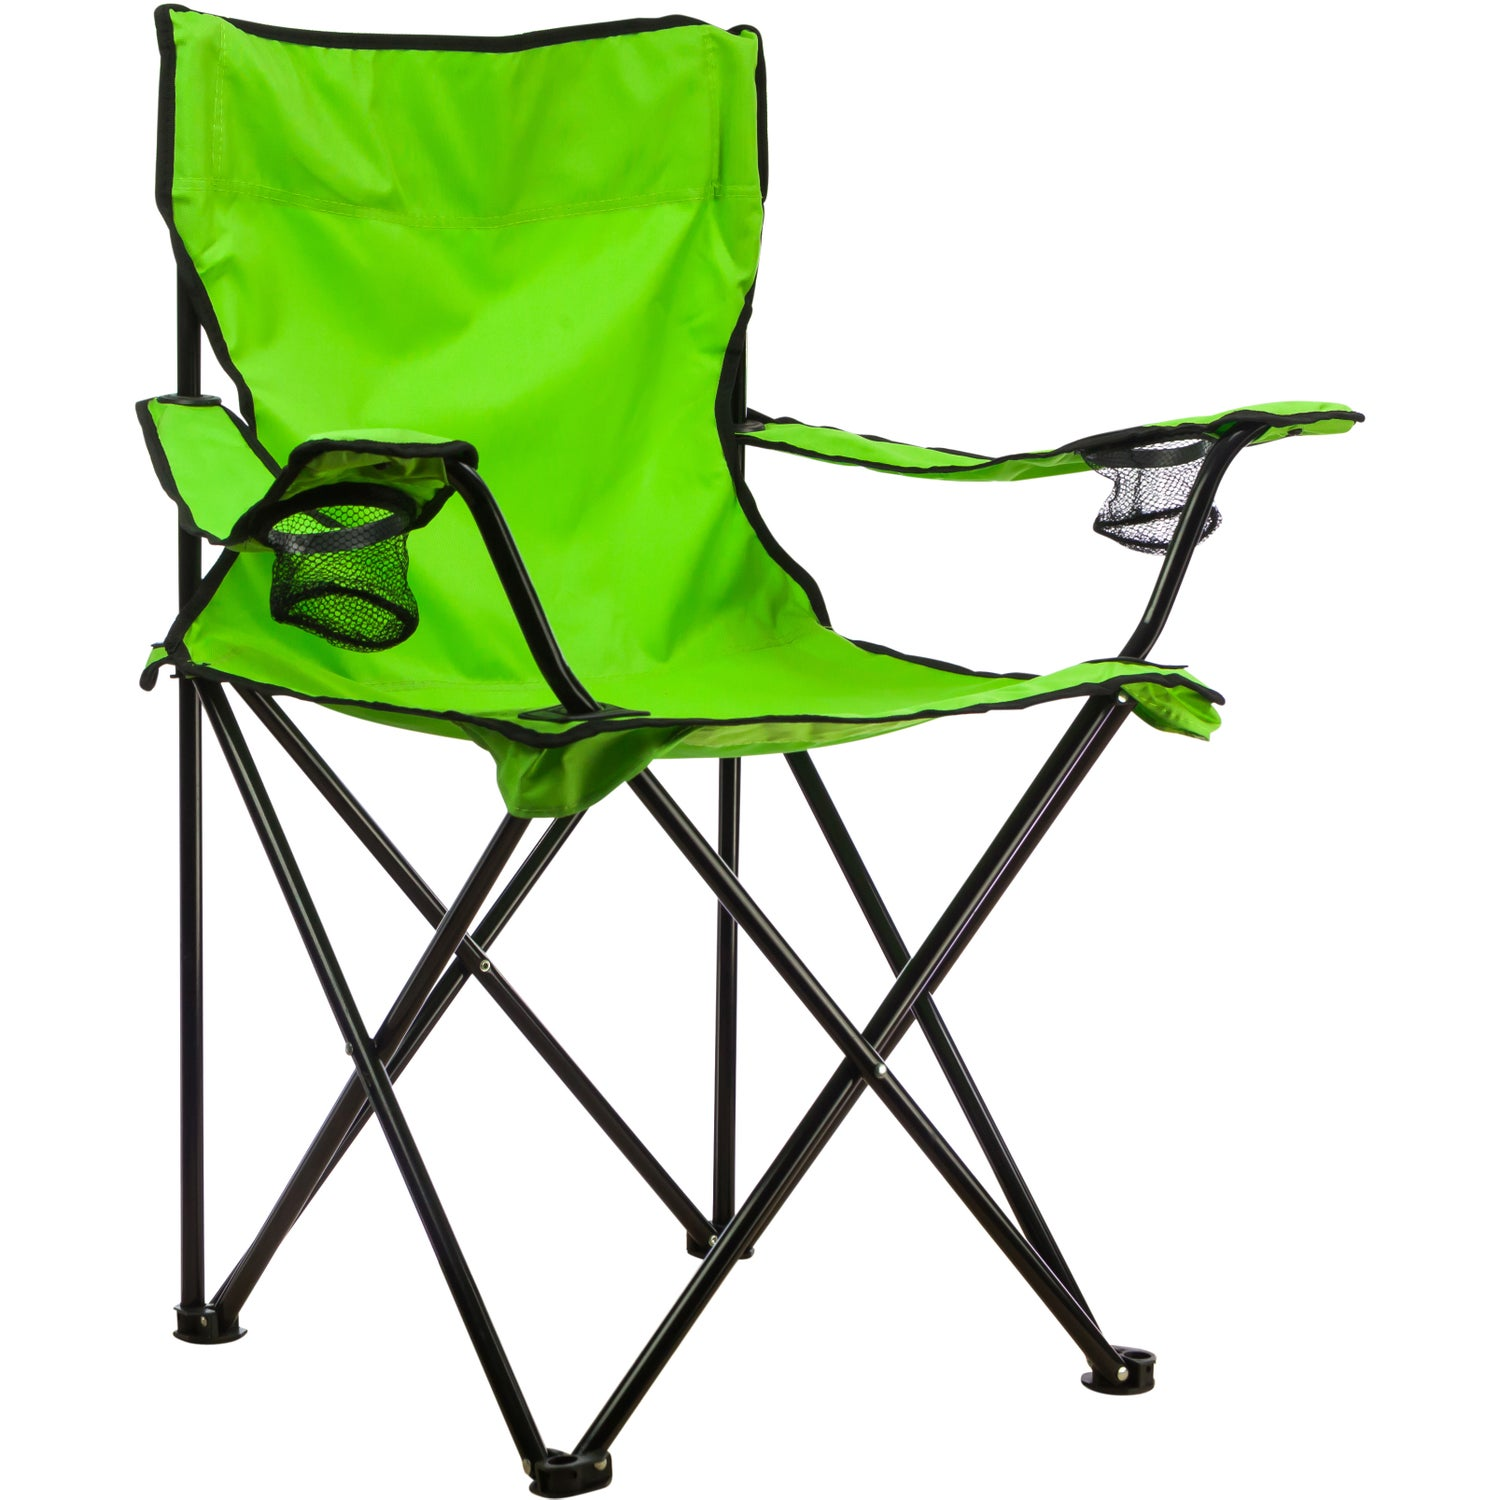 chairs products and chair foldable furniture camping beach hiking en c camp